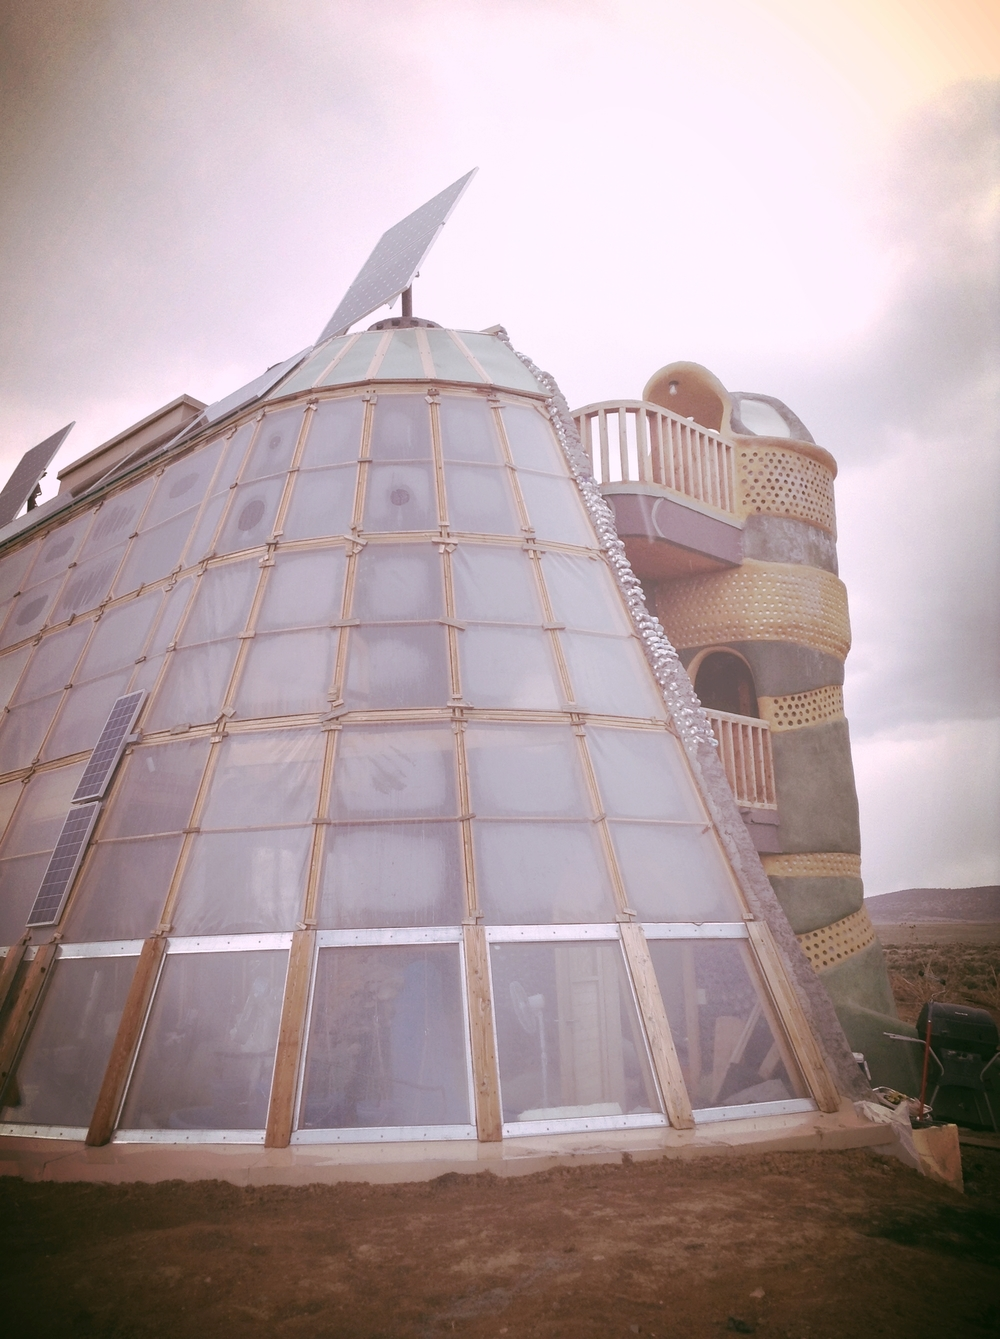 3 story Earthship under construction.